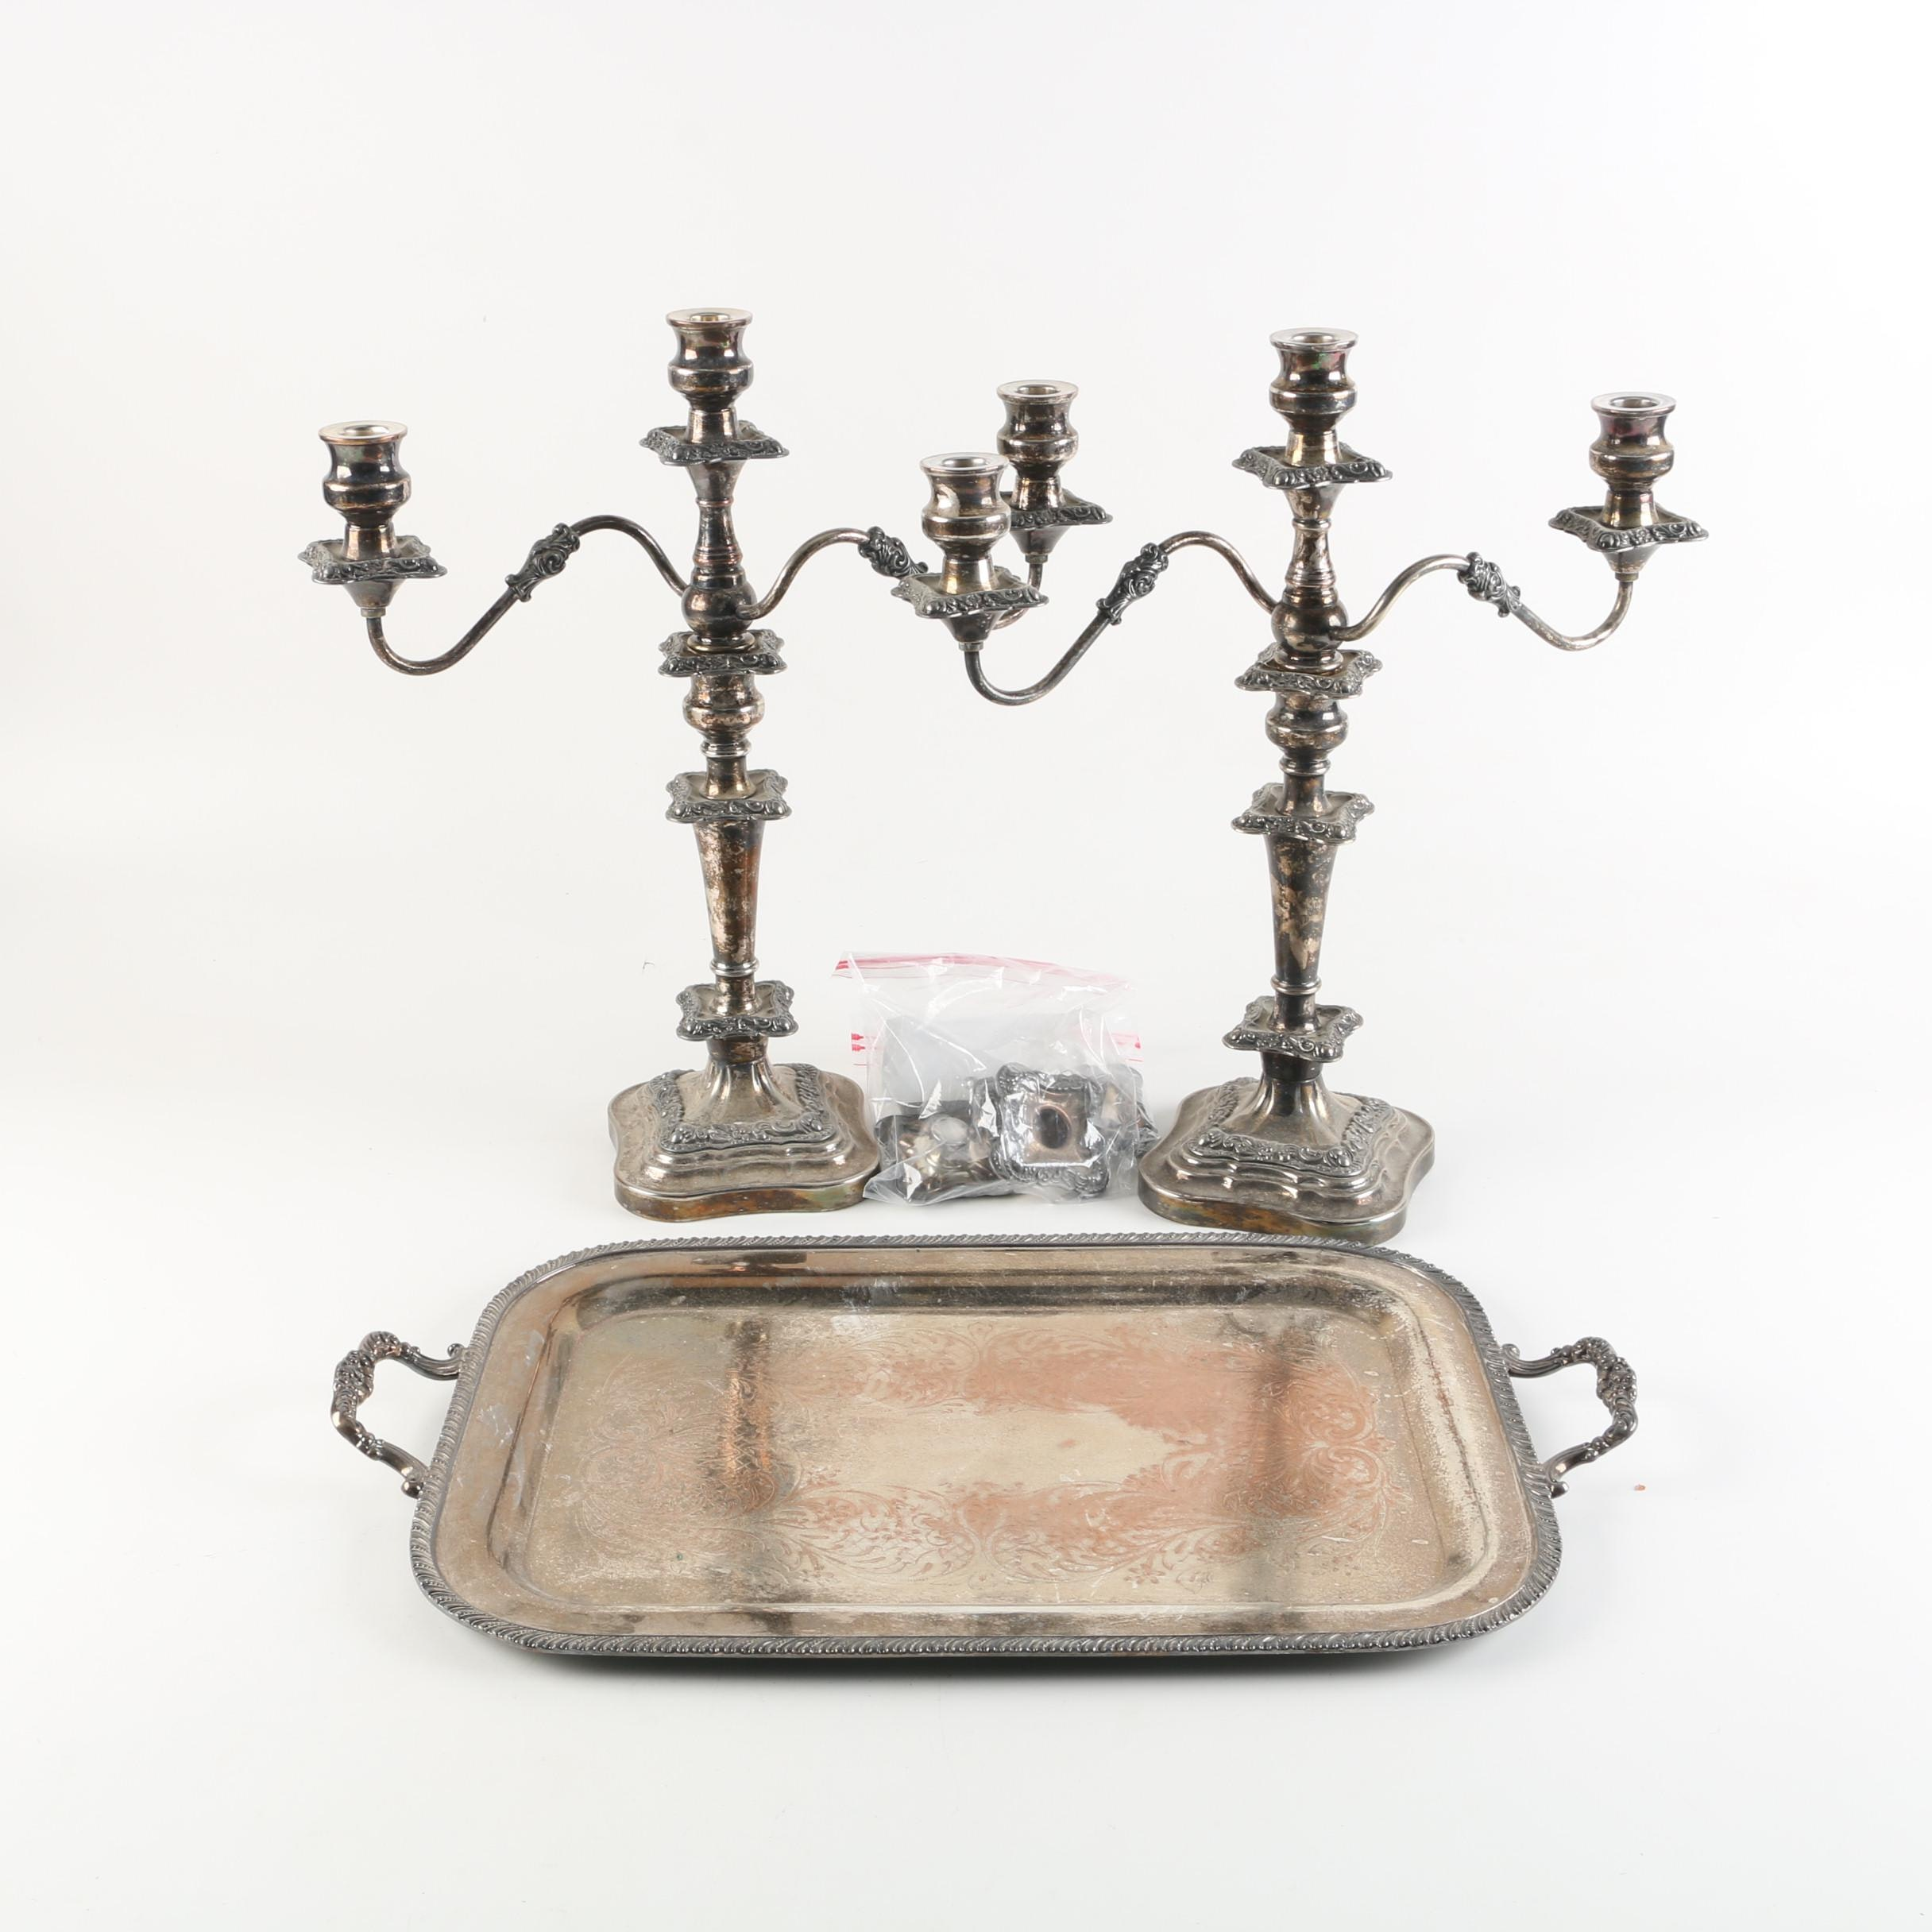 F.B. Rogers Silver Plate Tray with National Silver Co. Sheffield Candelabras